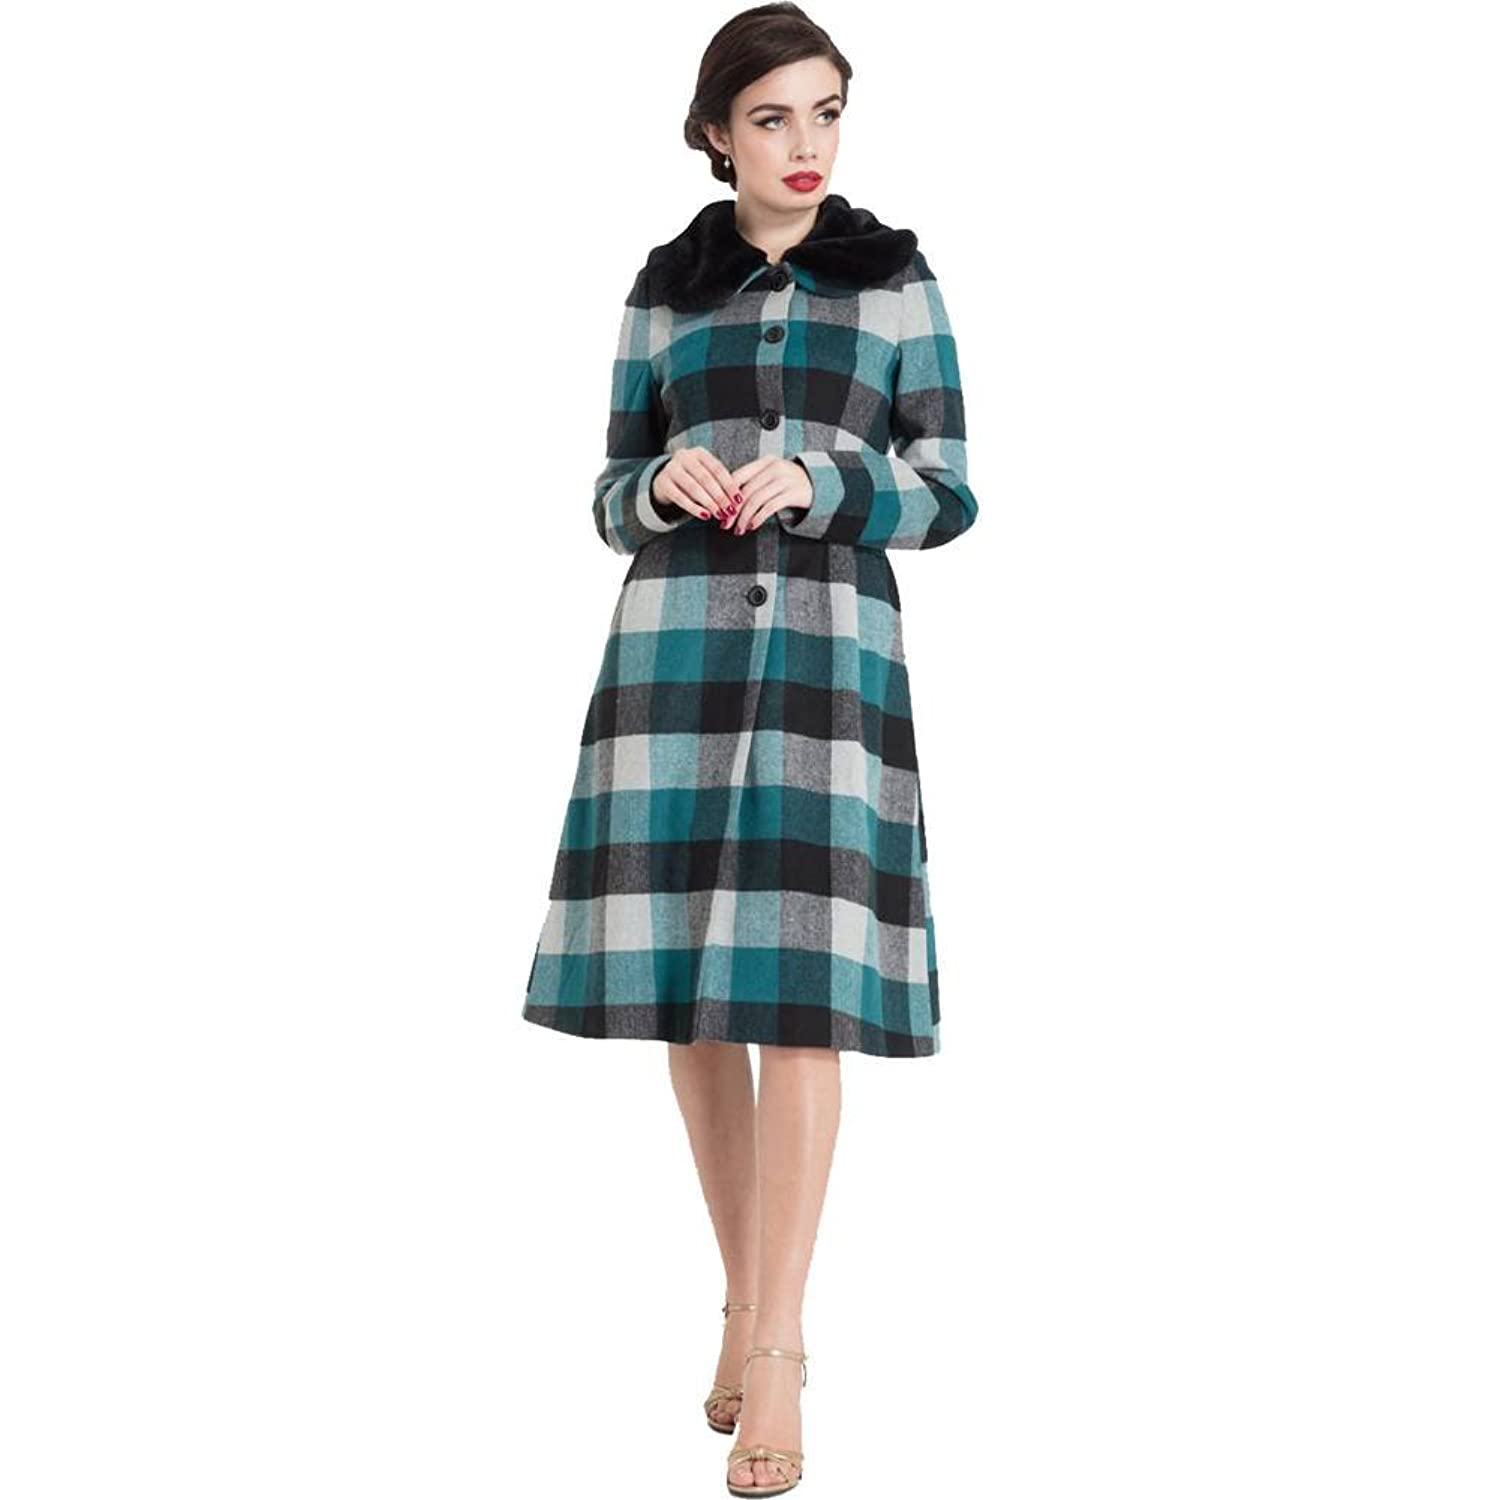 1950s Jackets, Coats, Bolero | Swing, Pin Up, Rockabilly Voodoo Vixen Womens Beatrice Woolly Check Coat Blue $118.99 AT vintagedancer.com